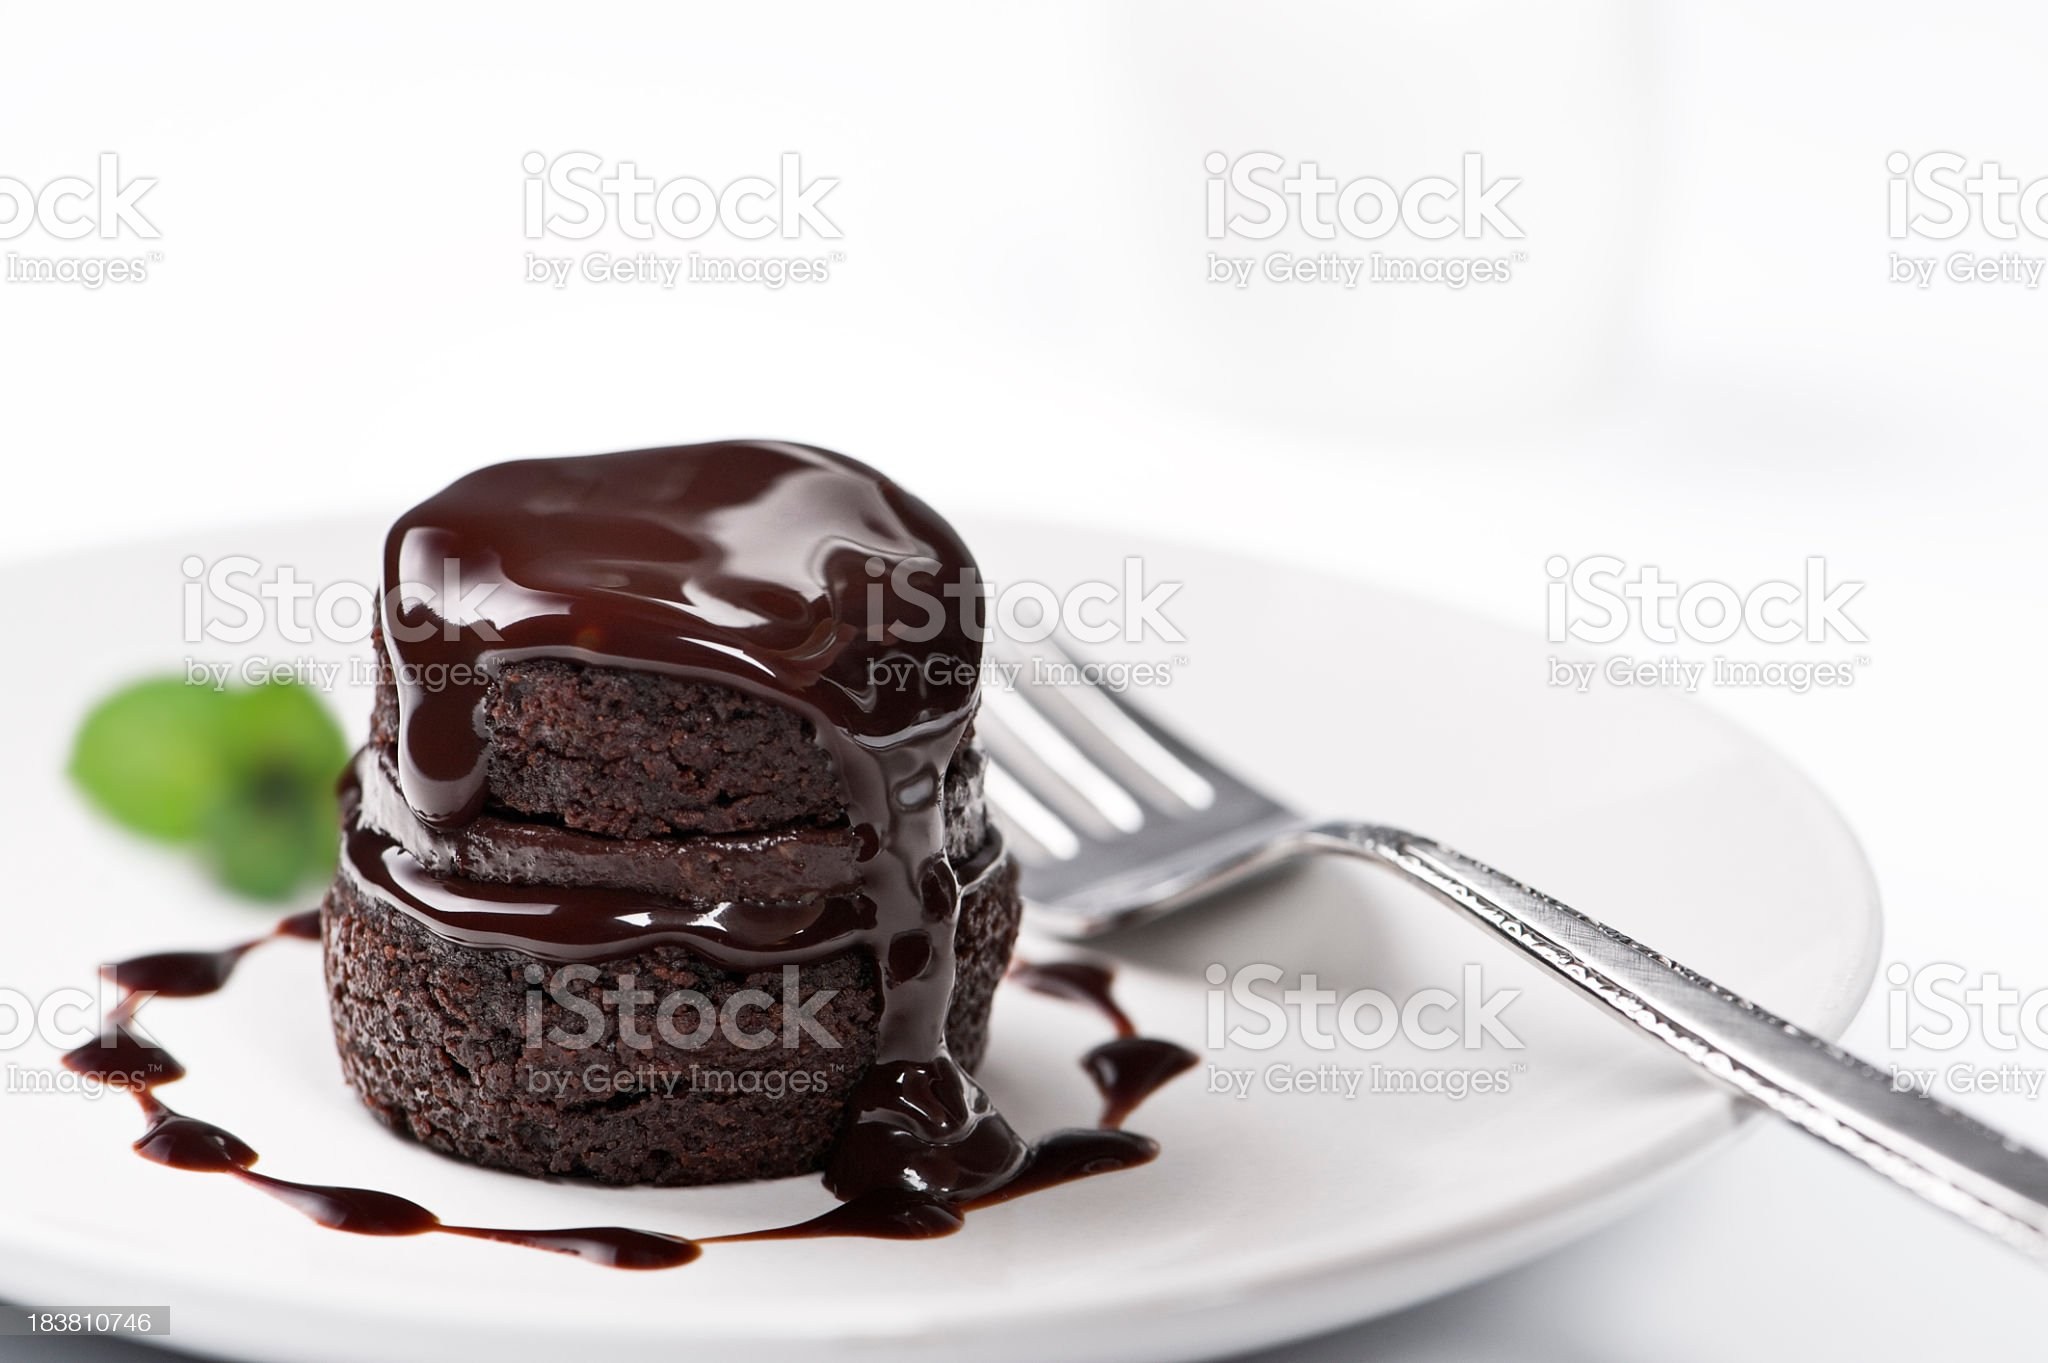 Chocolate cake with melted chocolate on top royalty-free stock photo